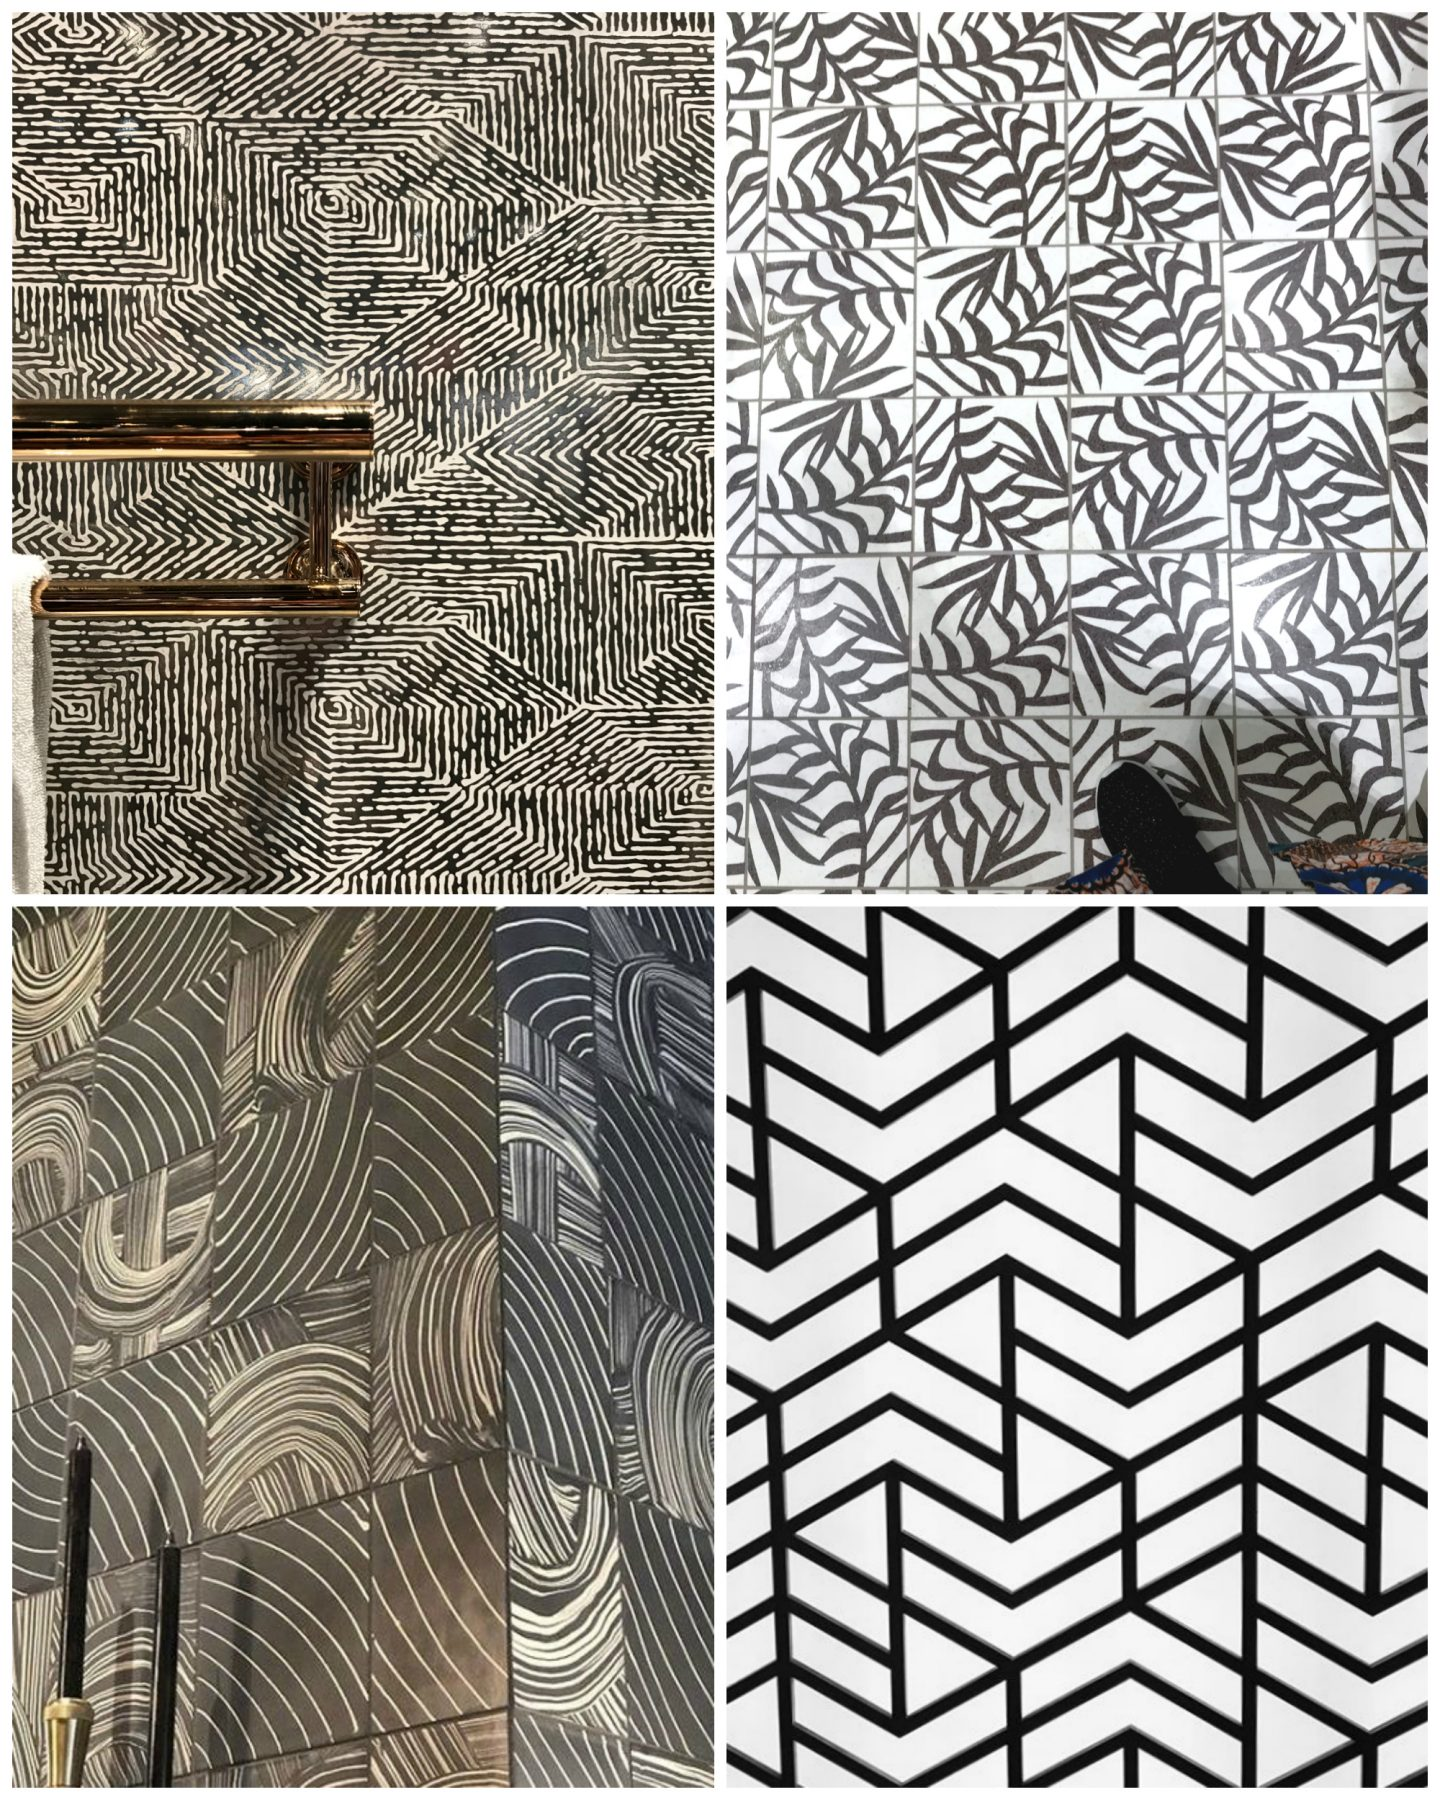 hellopeagreen, KBIS, blogtour KBIS, Kitchen and bathroom design, bathroom trend, luxury bathroom, tiles, black & white tiles, monochrome